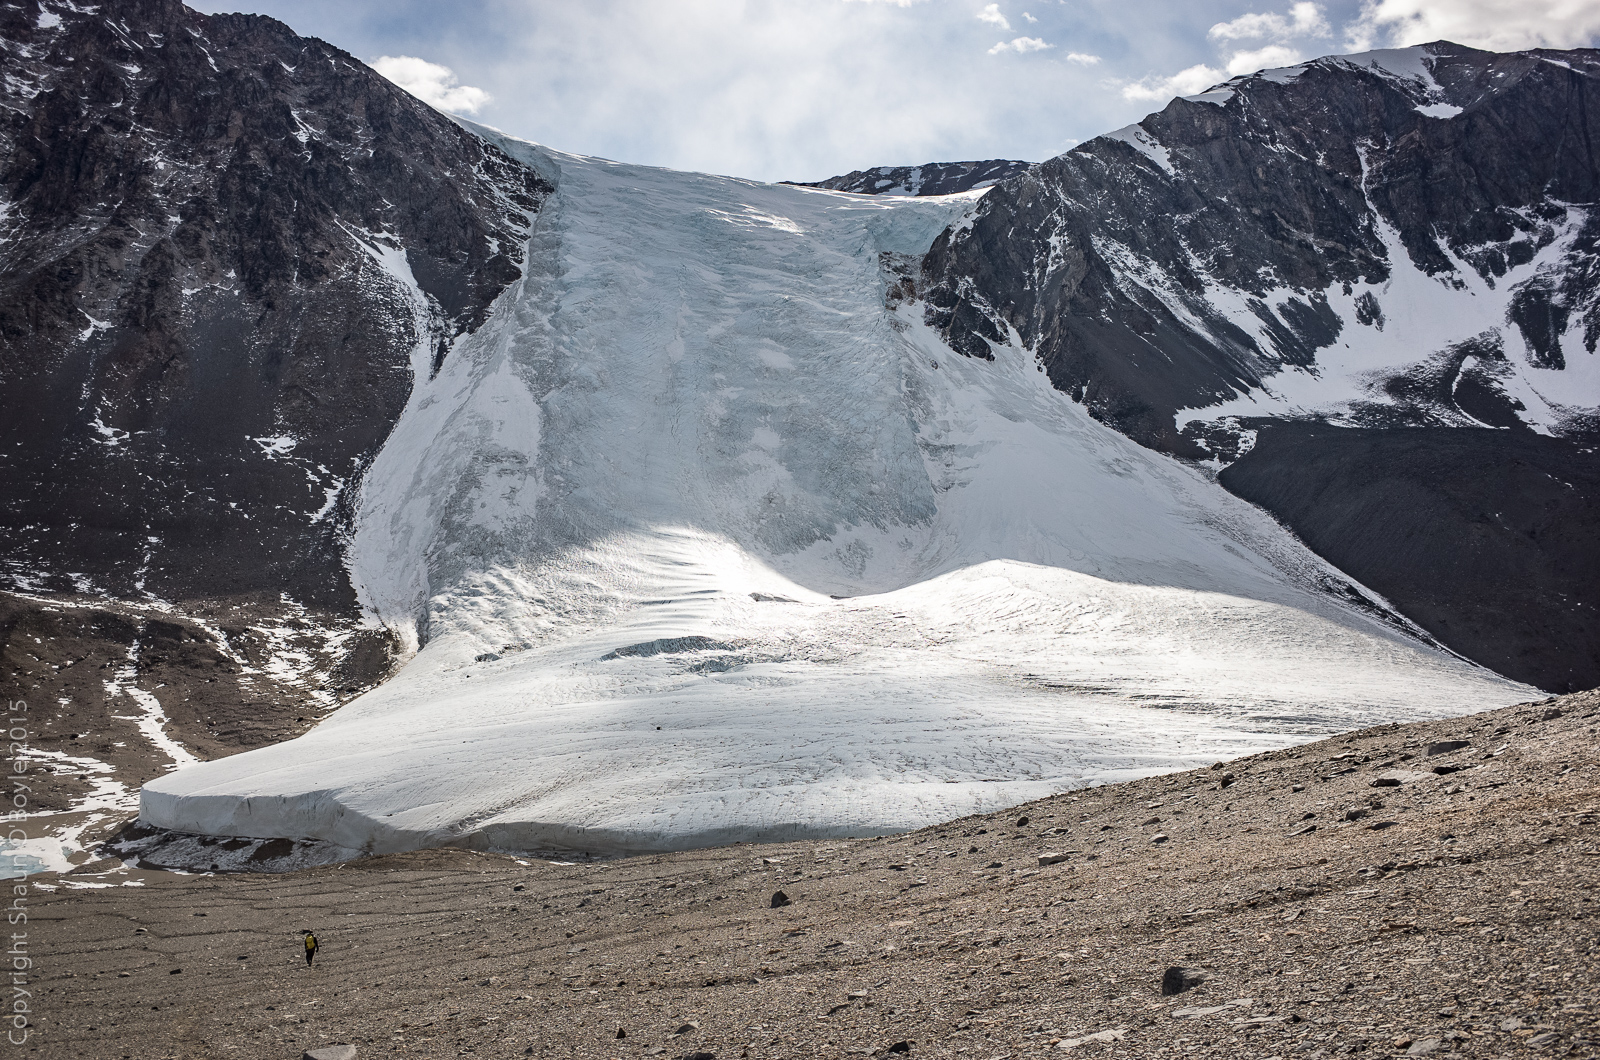 Seuss Glacier while descending from Nussbaum Riegel and heading toward Lake Hoare